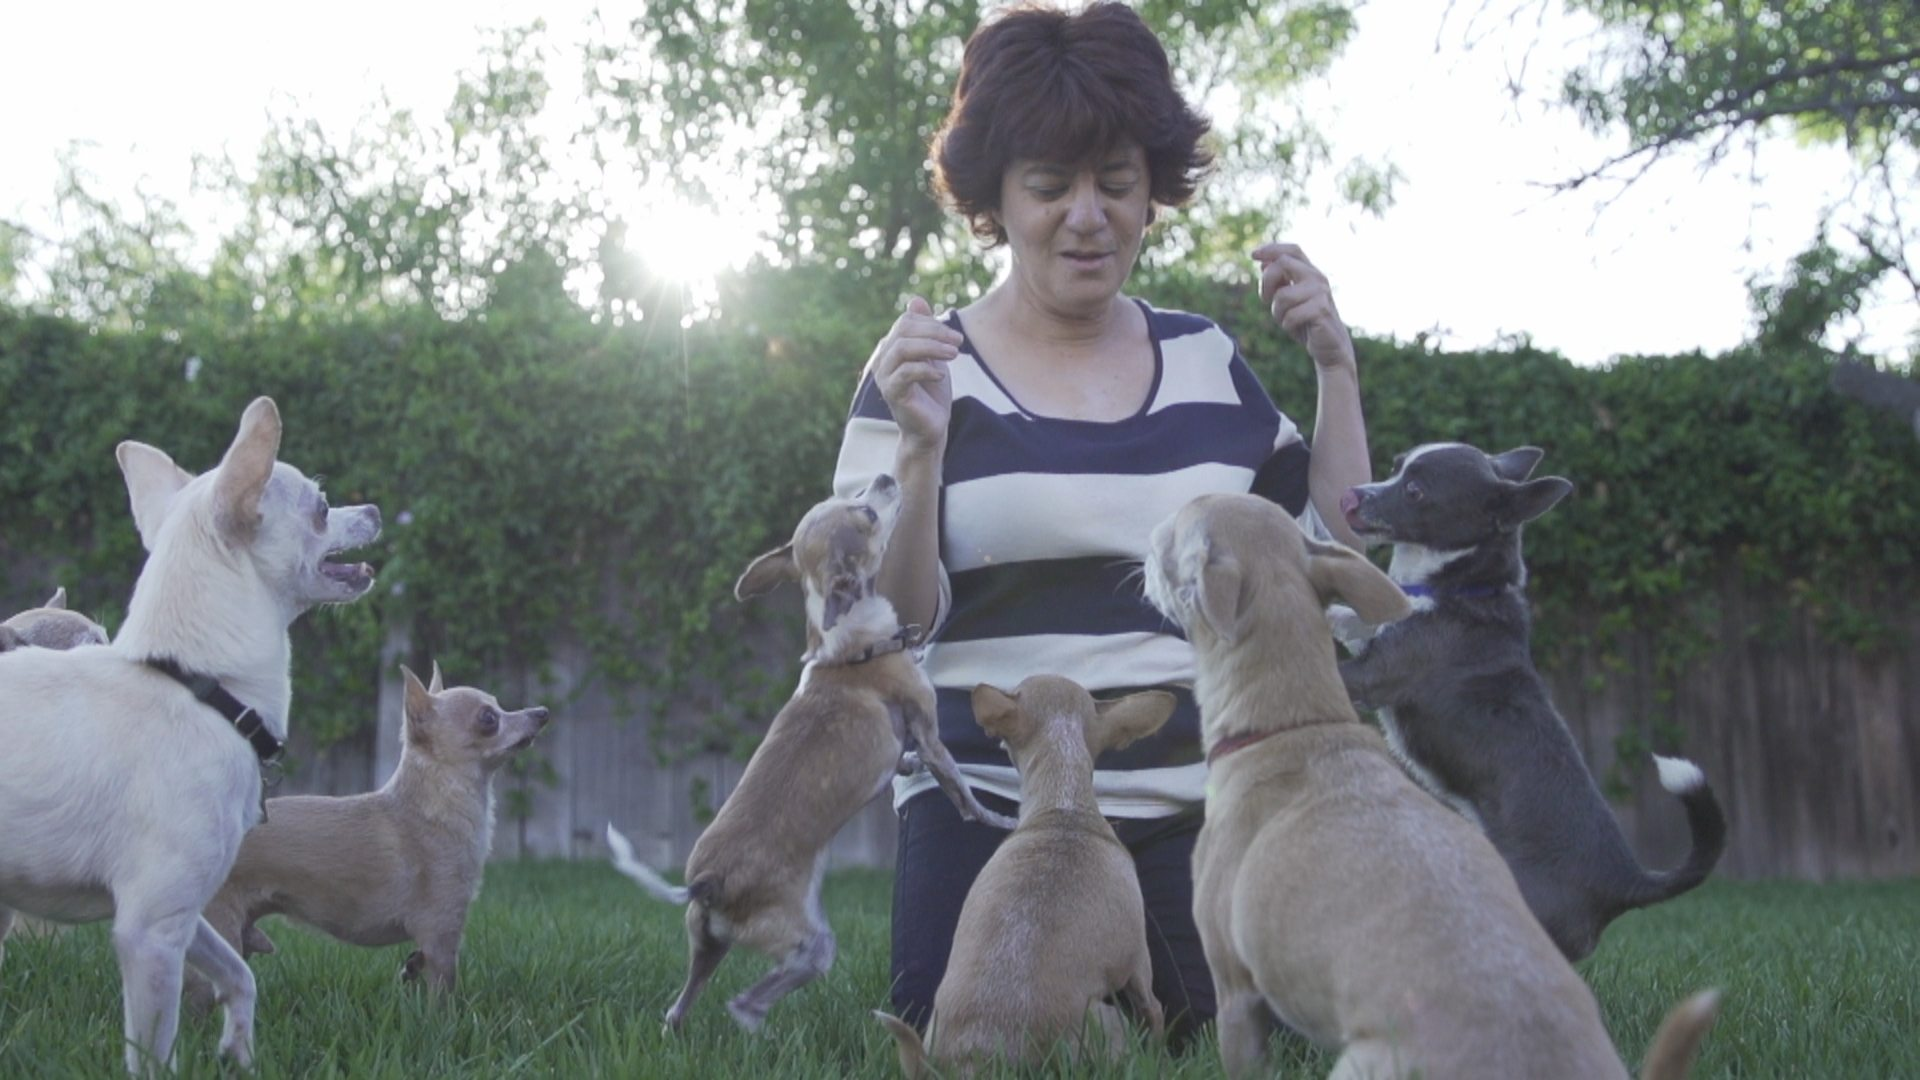 This Former Hollywood Stunt Double Has Saved Over 2,000 Dogs